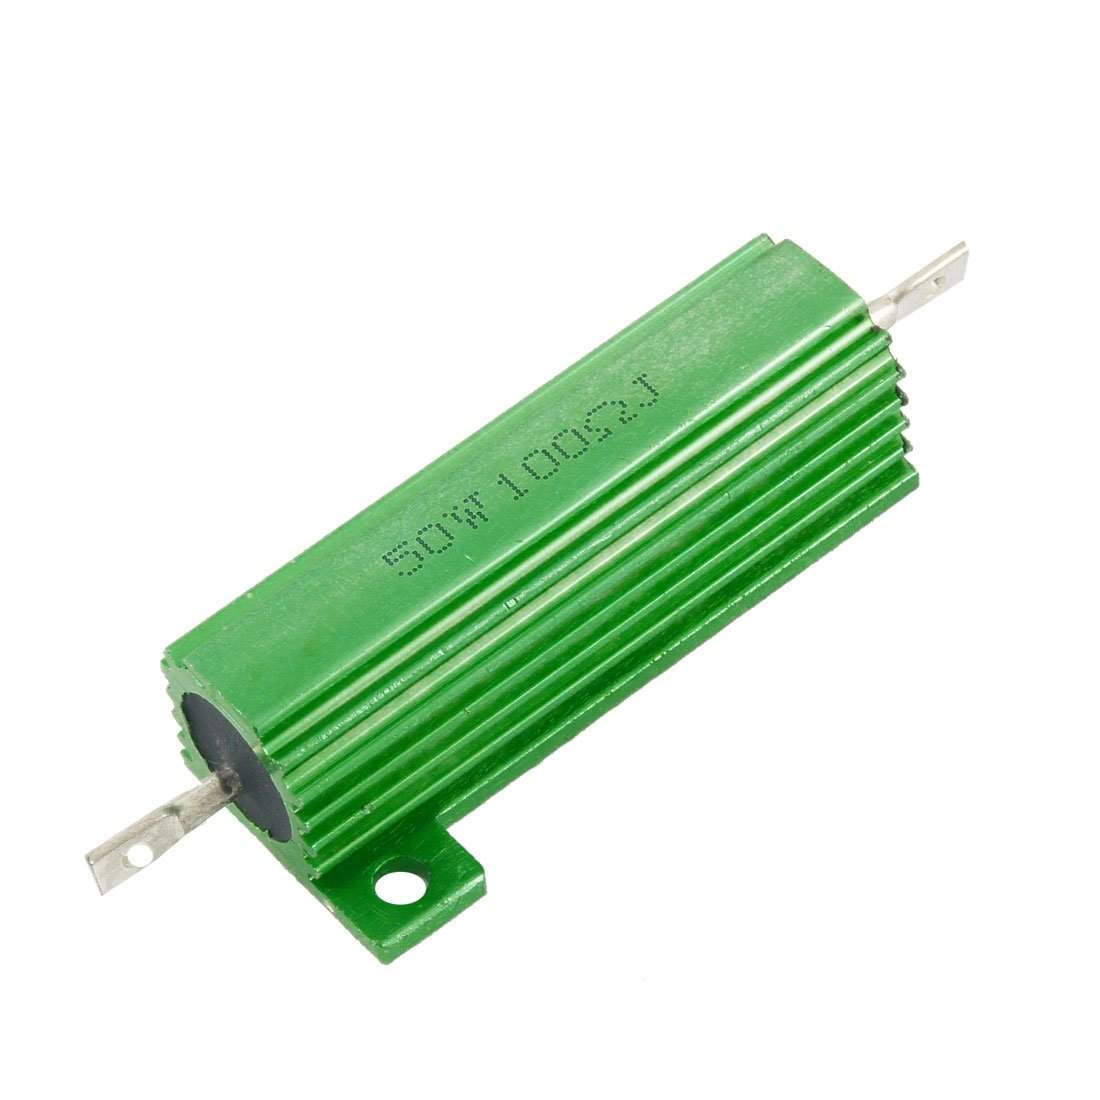 50 Watt 100 Ohm 5% Green Aluminum Shell Wire Wound Resistor uxcell a12050400ux0137